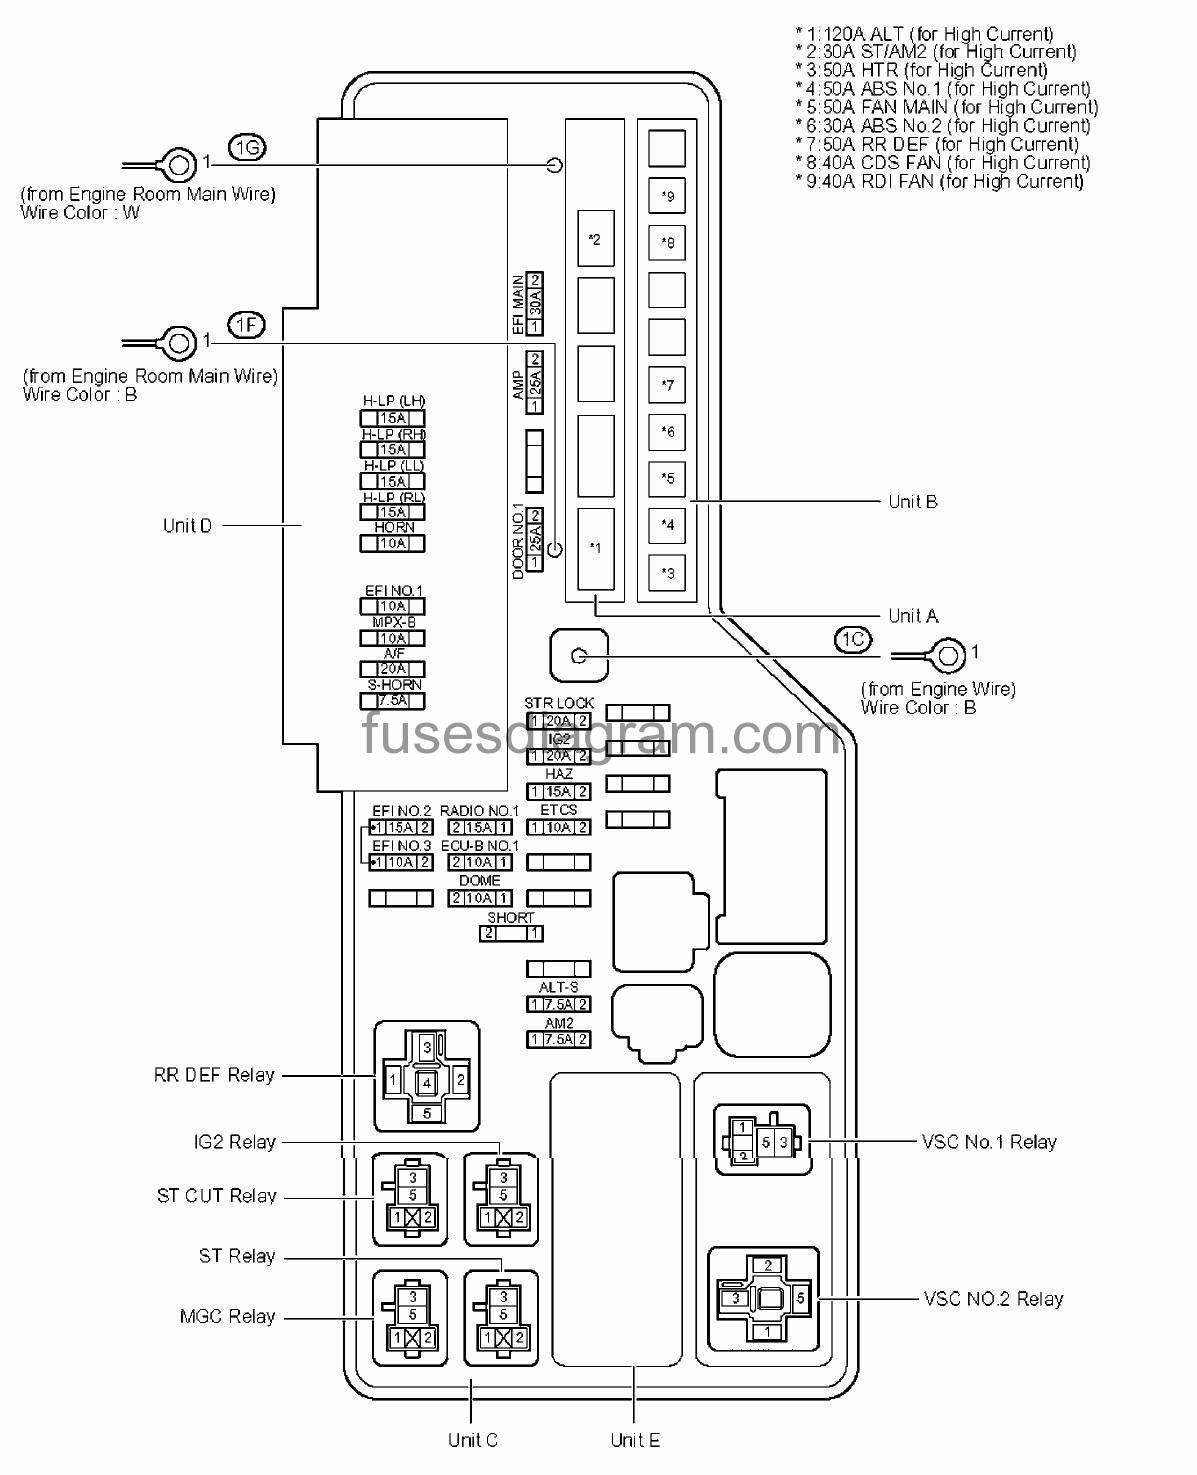 hight resolution of 02 camry fuse box schema box wiring diagram 2000 toyota camry fuse boxes 2000 toyota camry fuse box diagram